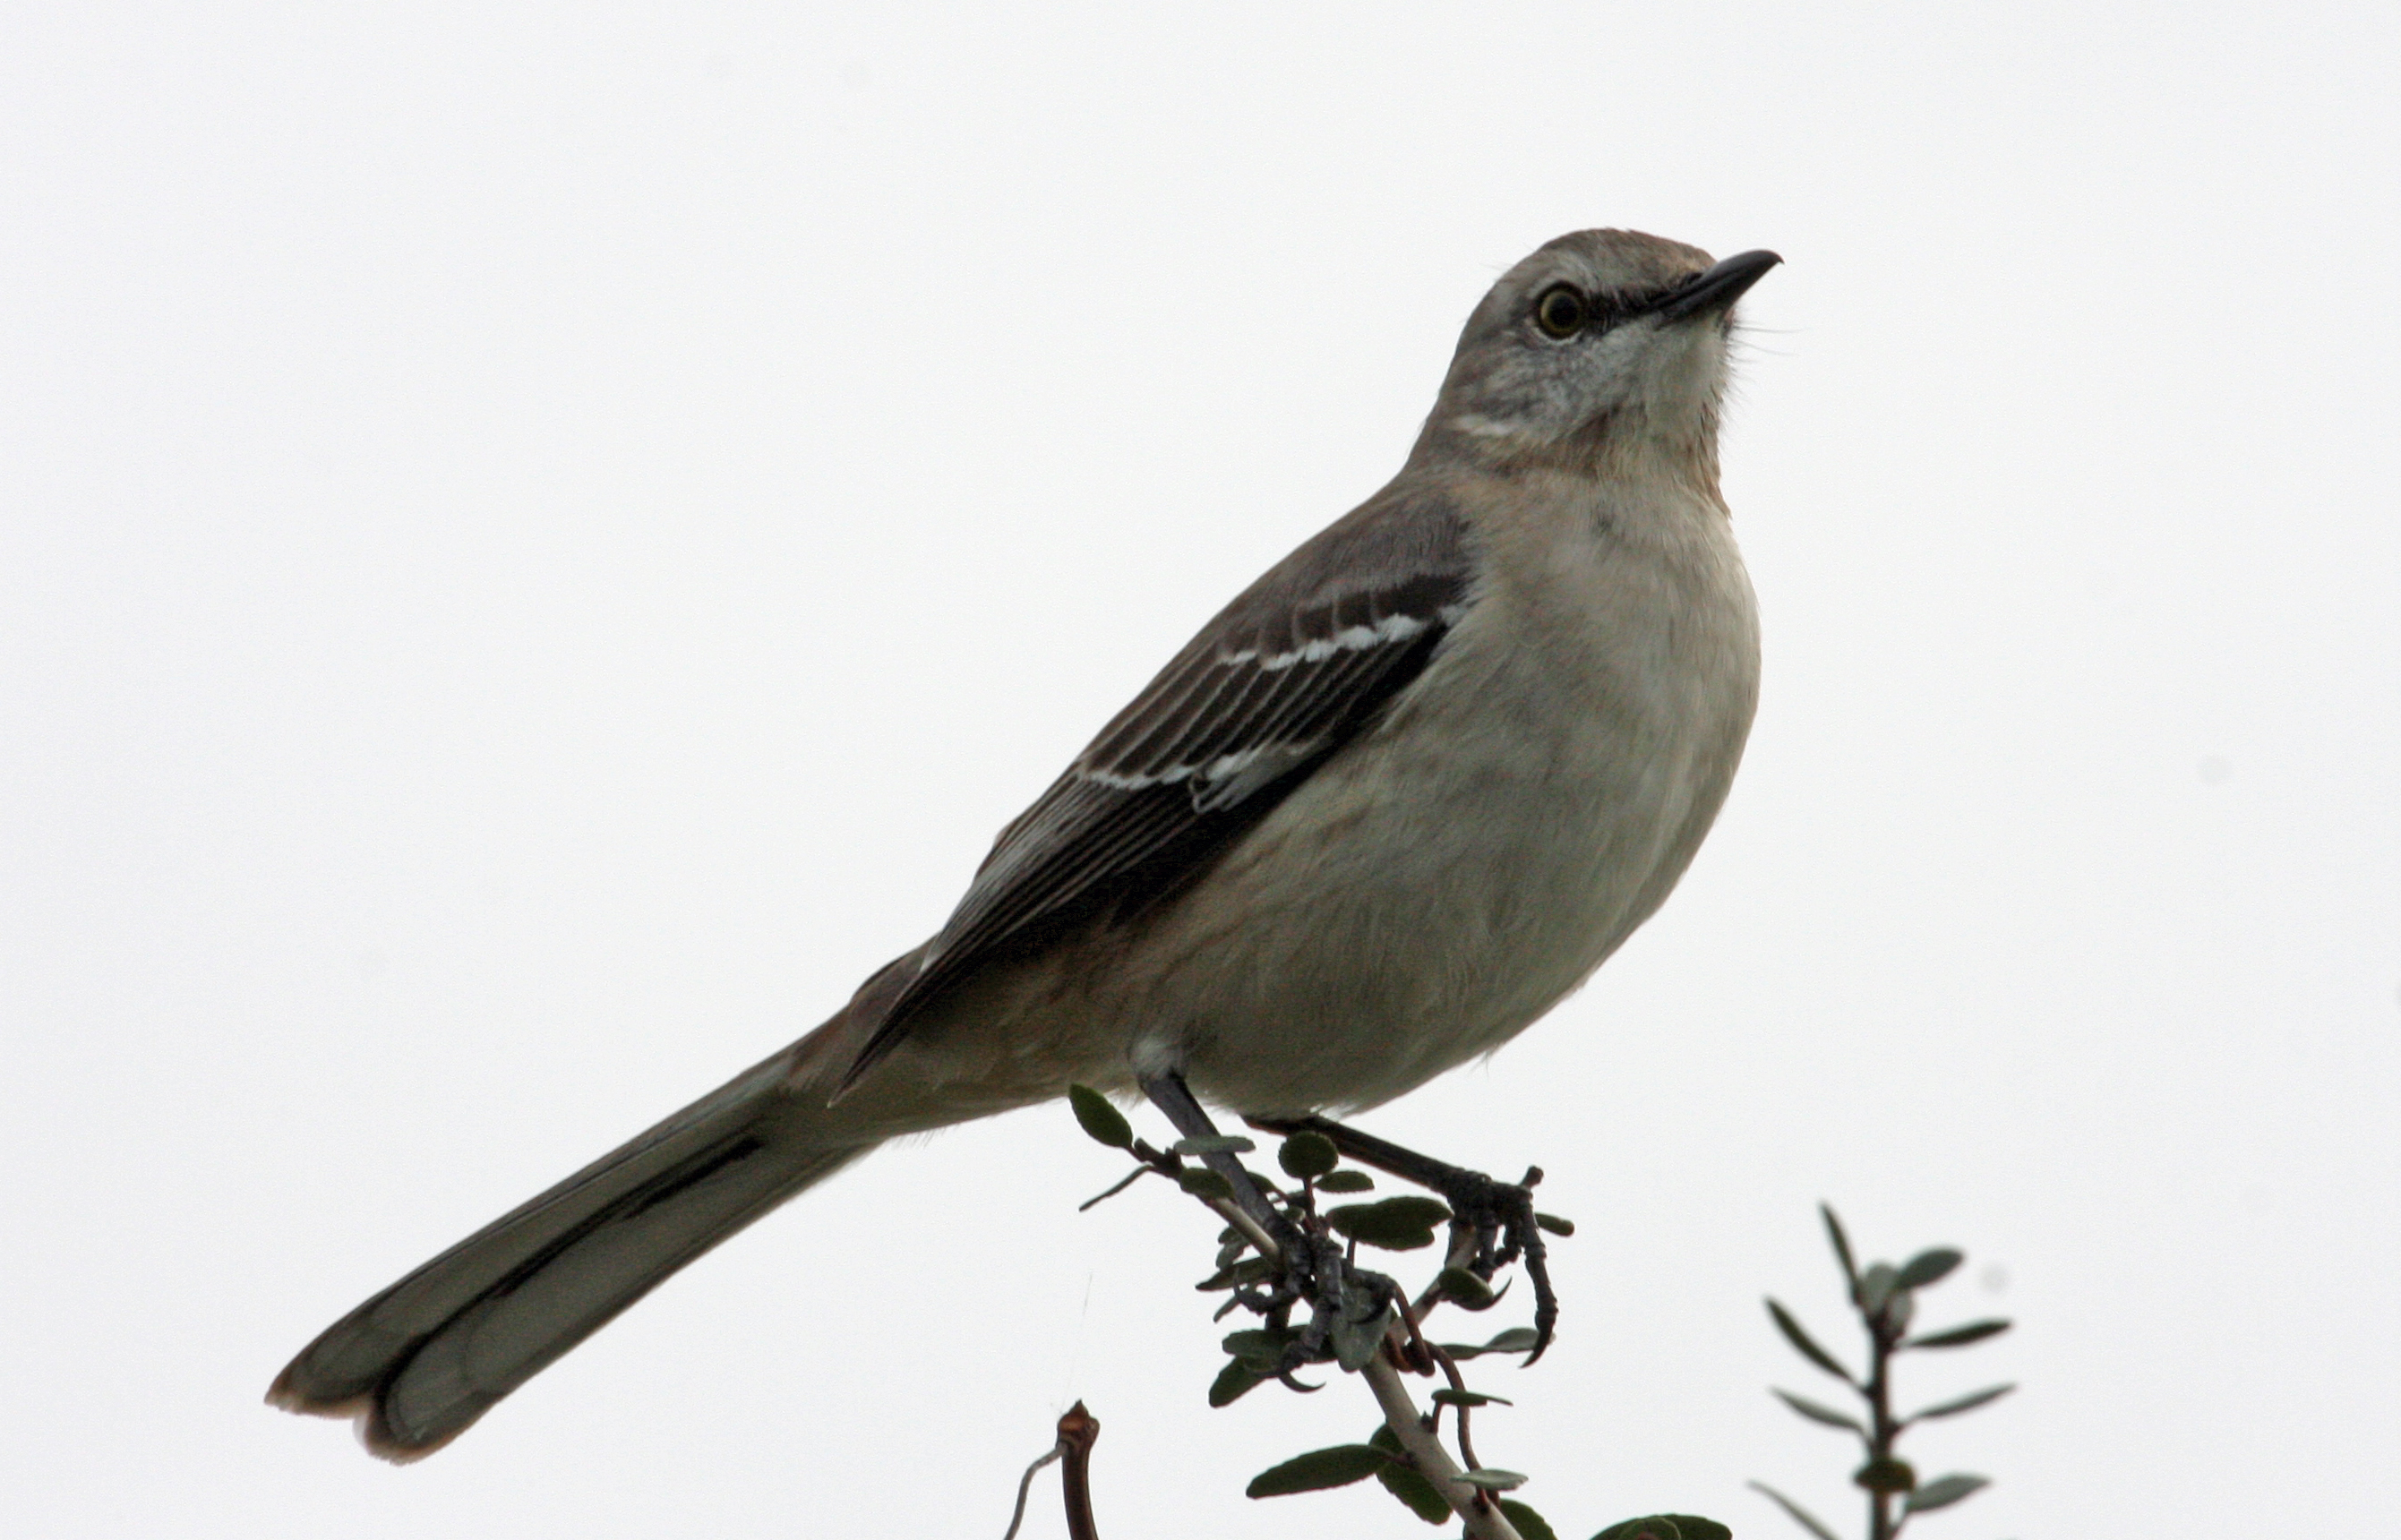 northern mockingbird on tree